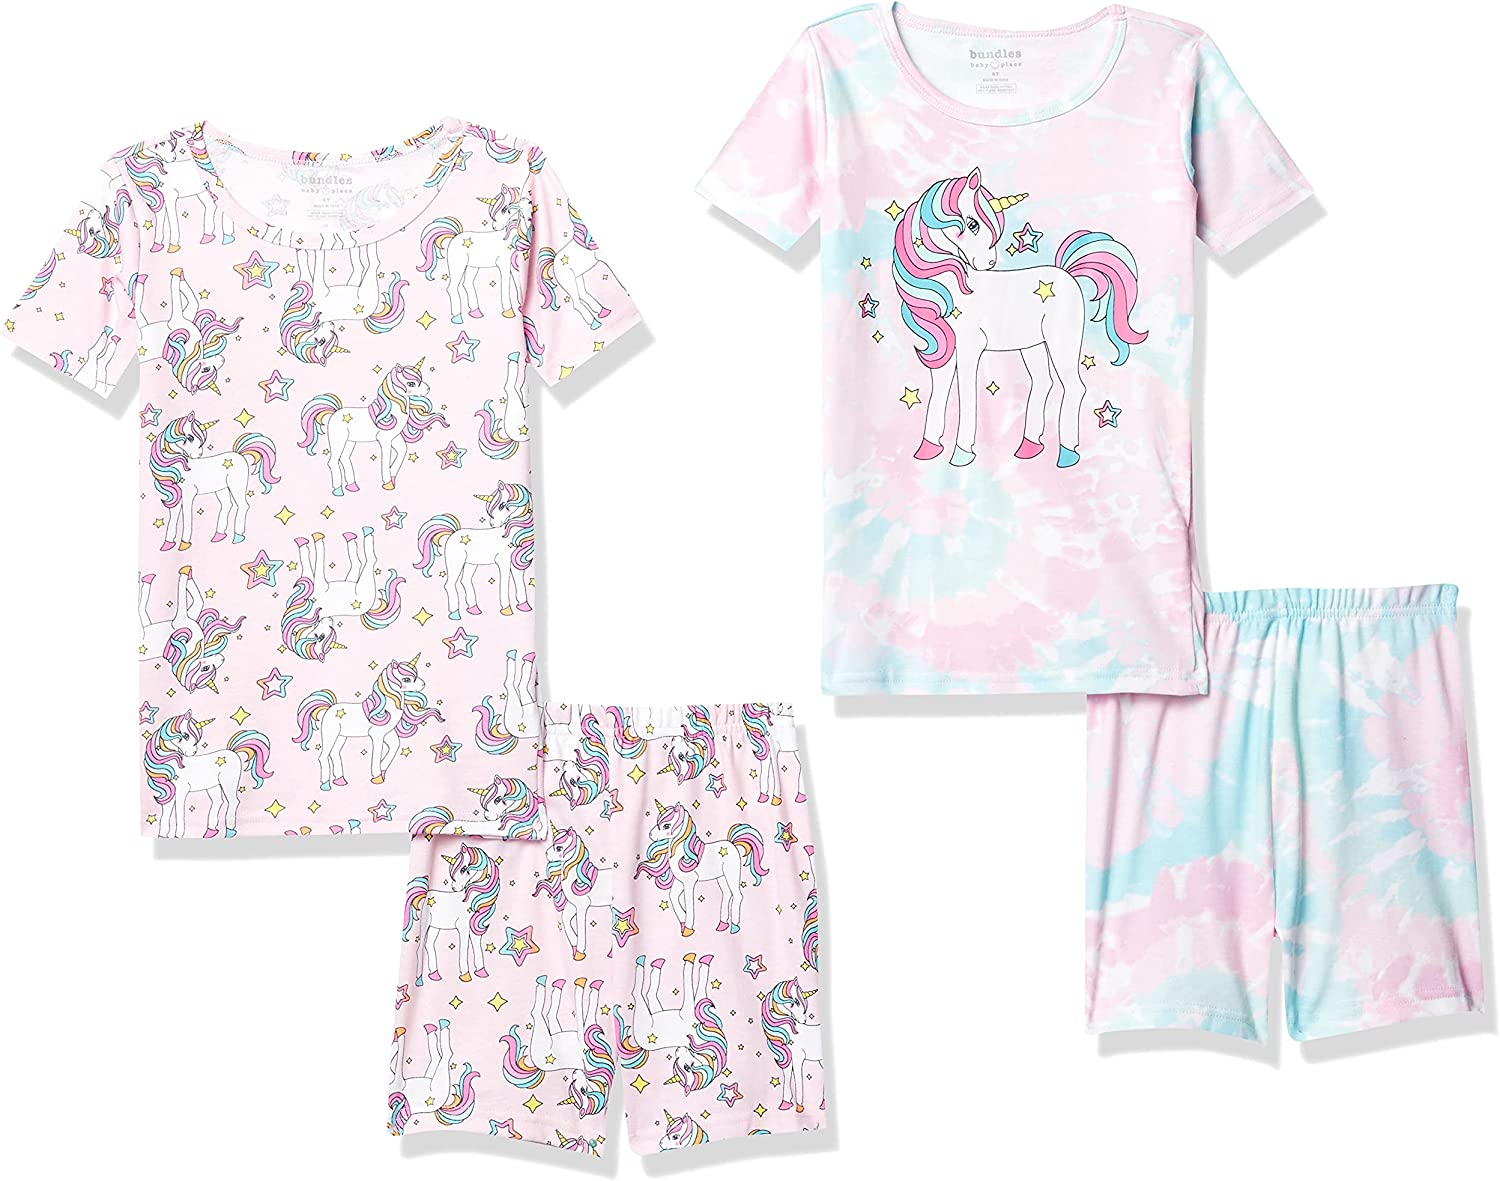 The Children's Place Baby And Toddler Girls Unicorn Snug Fit Cotton 4-Piece Pajamas